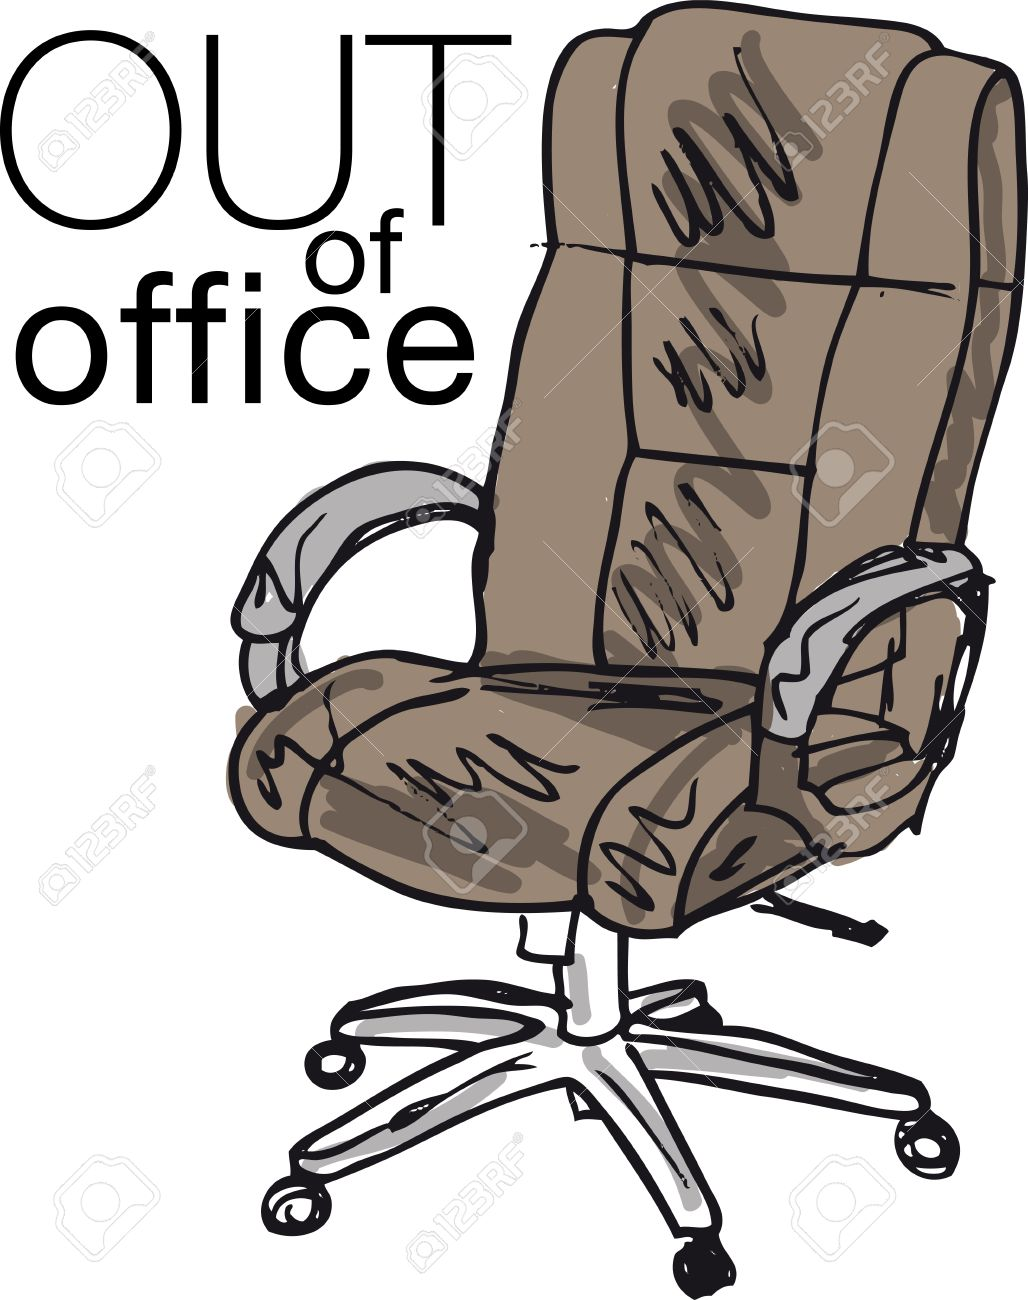 out of office. Vector illustration Stock Vector - 12288563